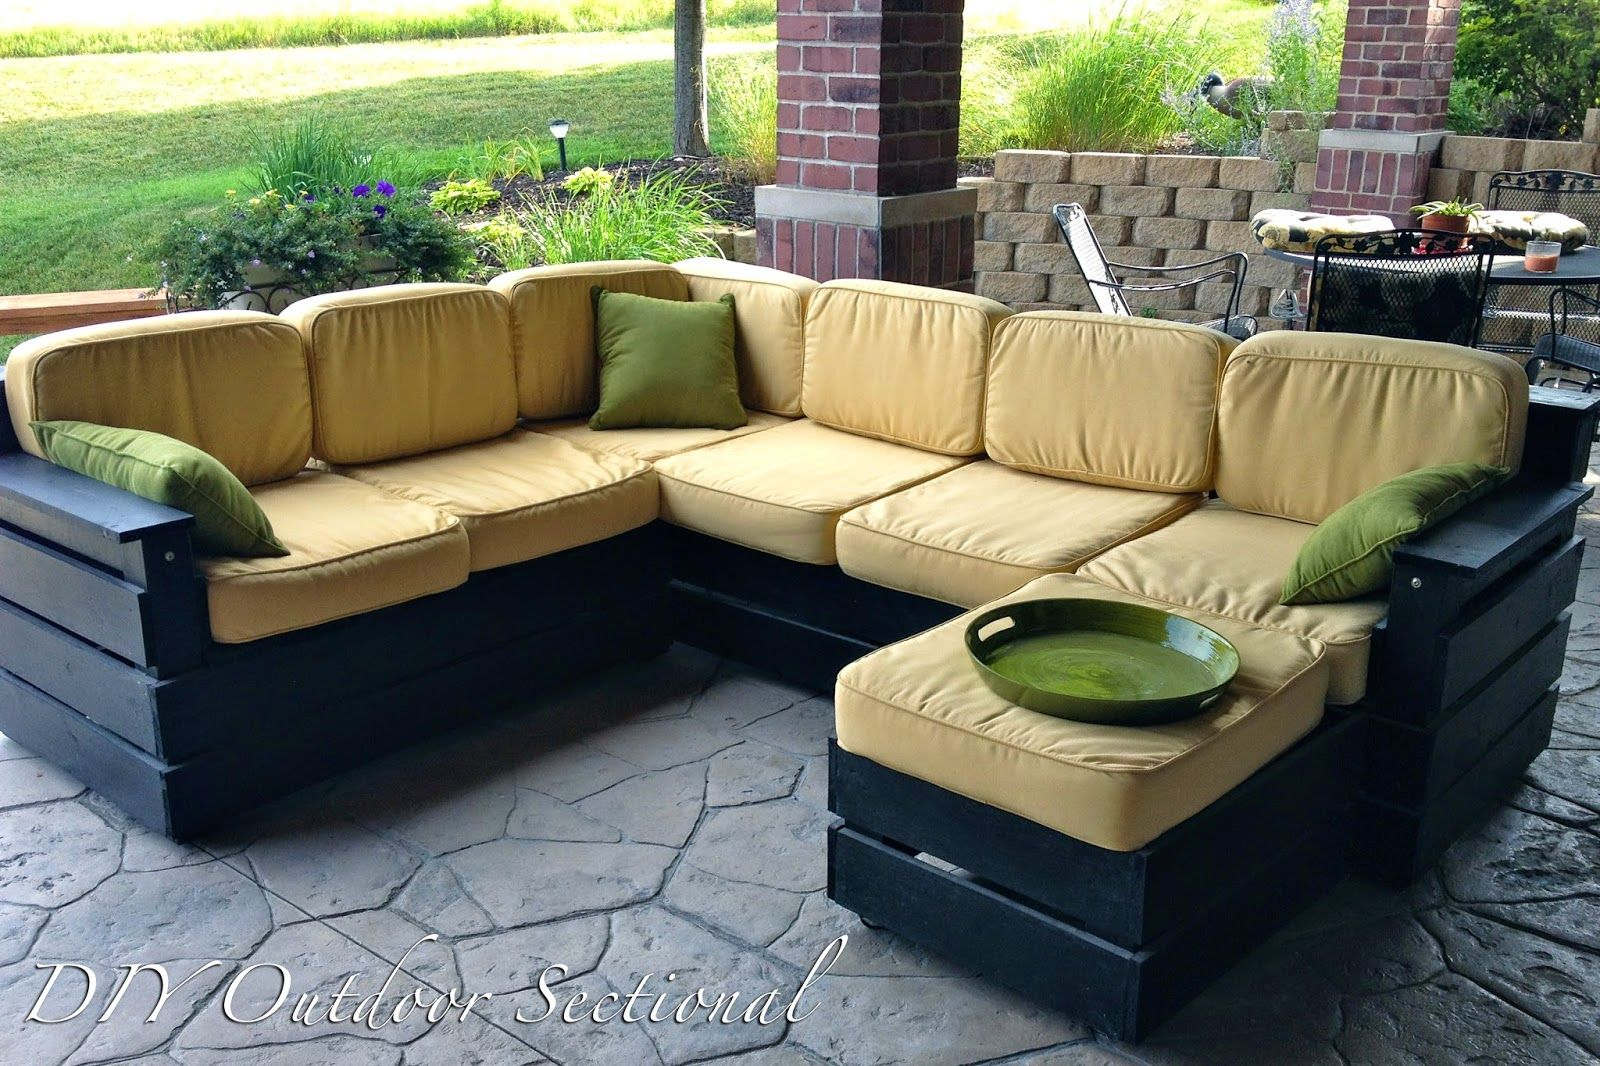 Diy outdoor sofa - Diy Outdoor Sectional Build It Yourself Out Of Regular Wood From A Home Improvement Store